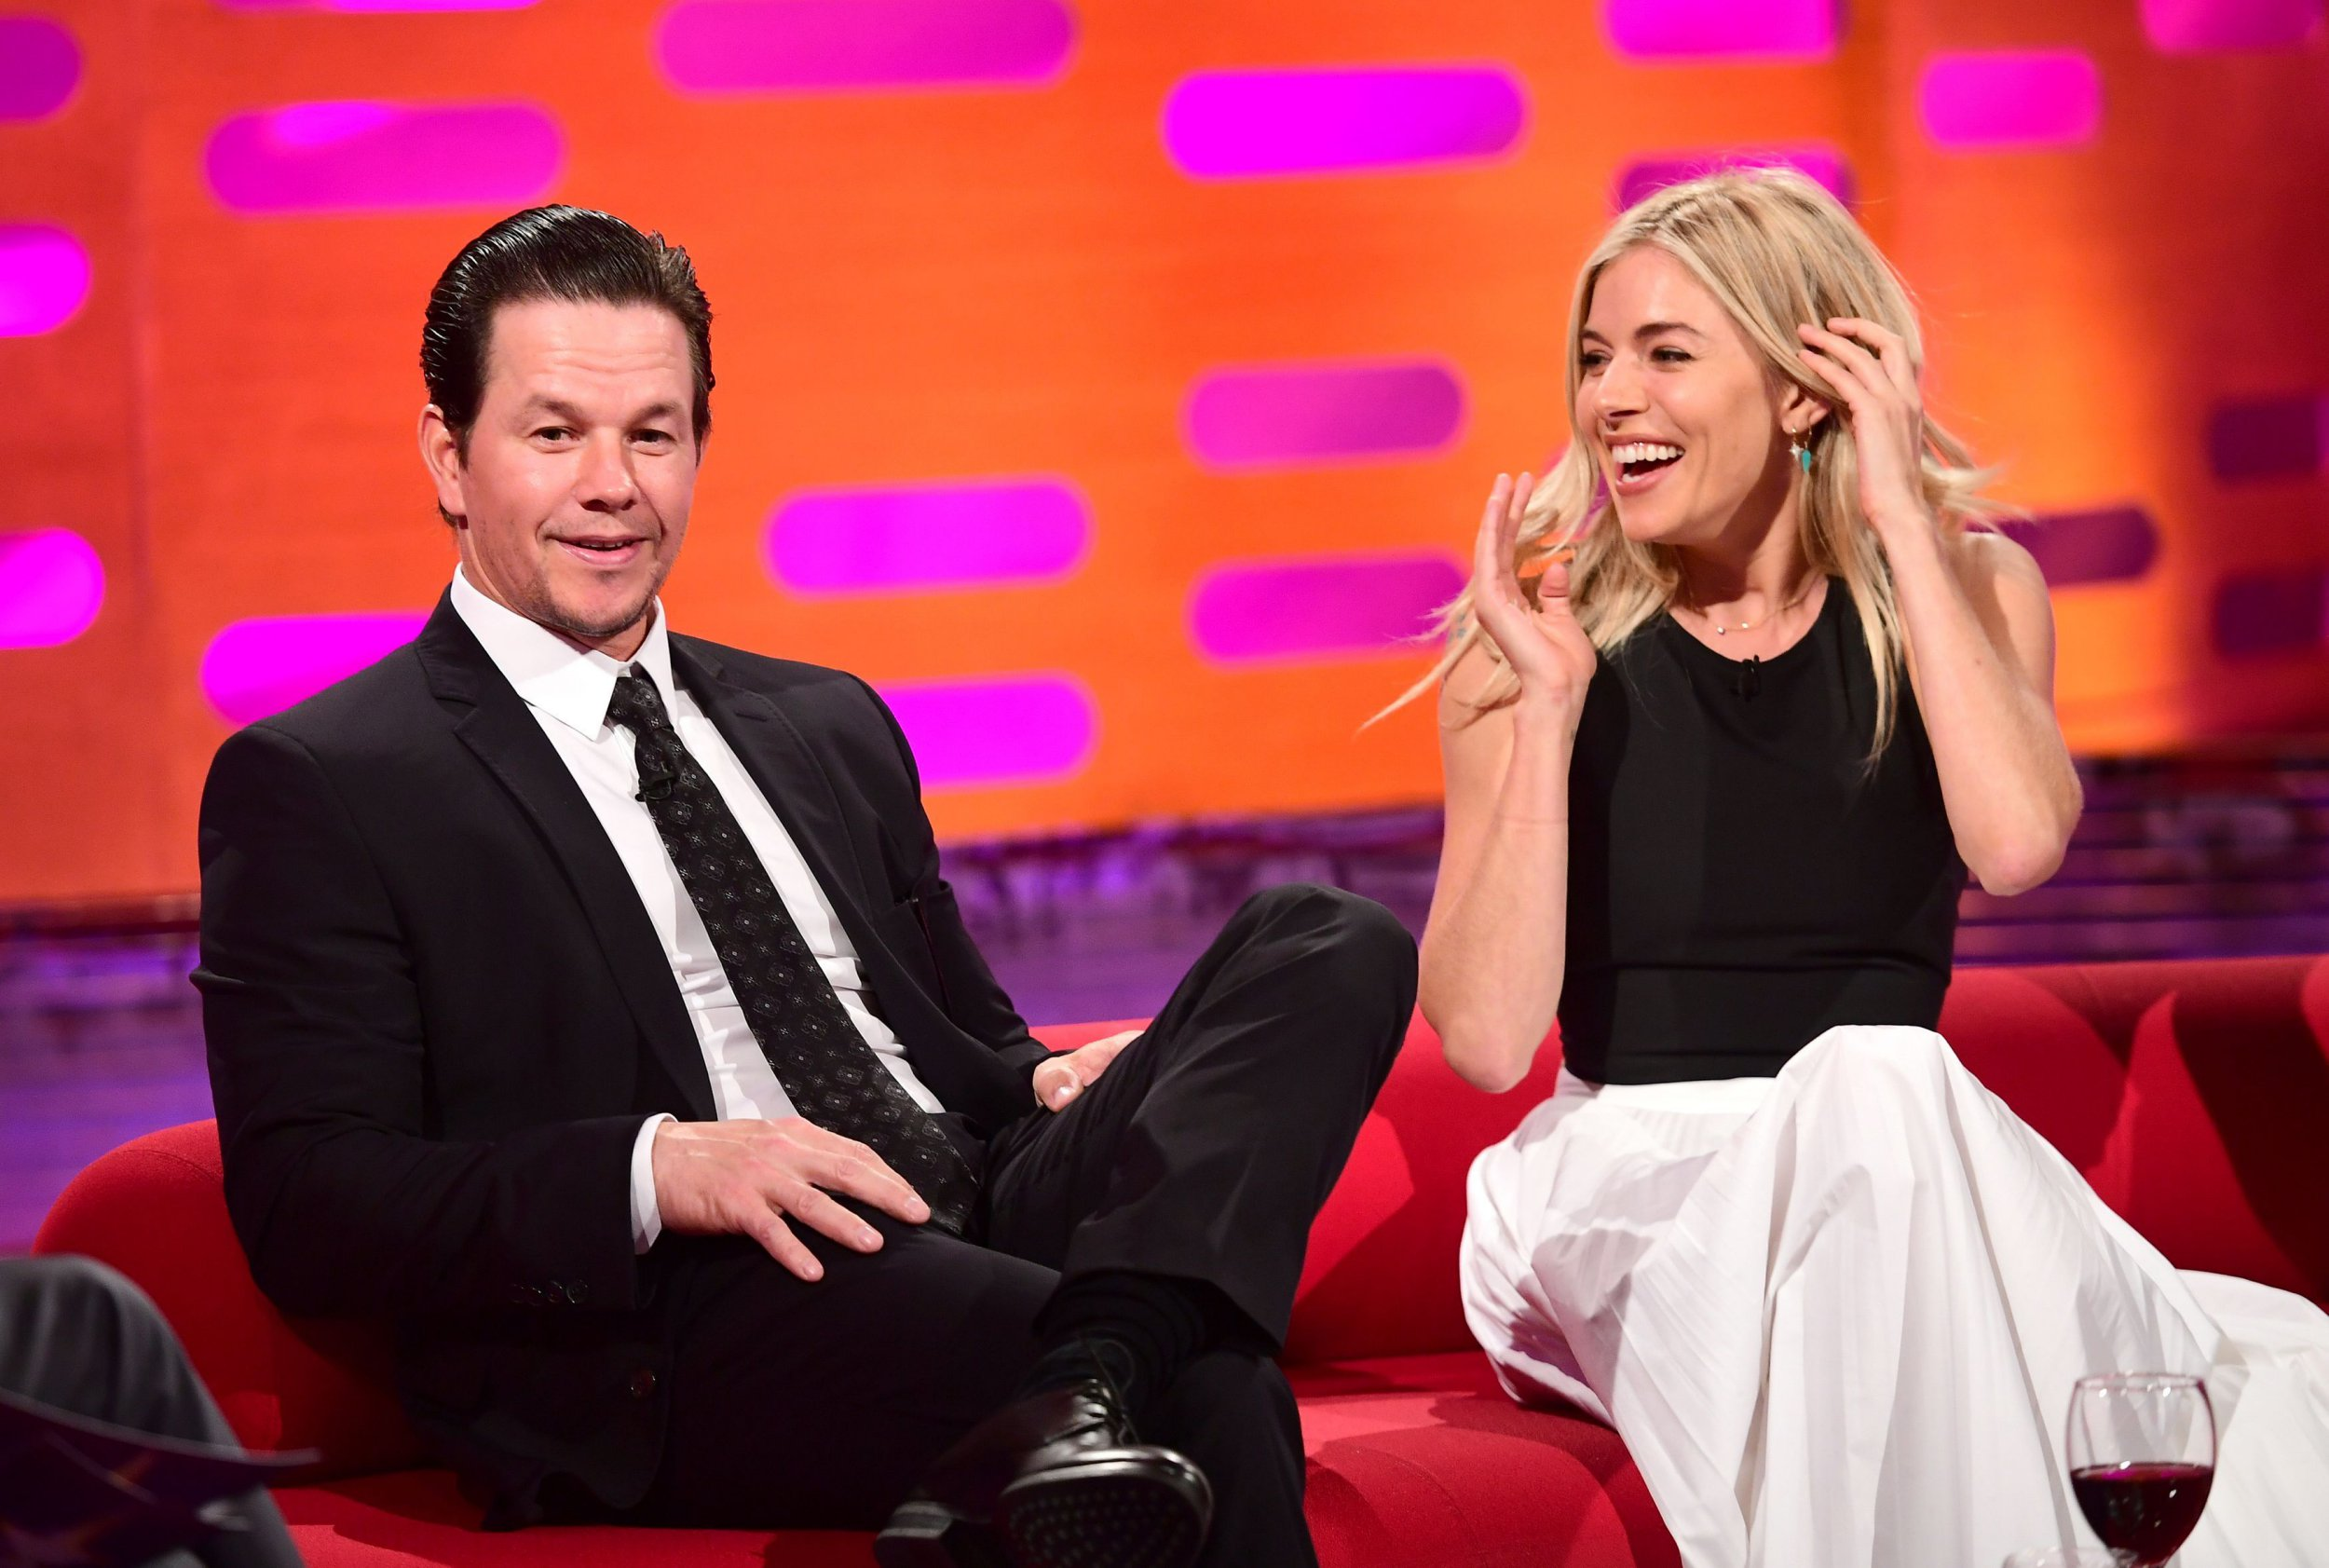 'I lactated all over him': Sienna Miller talks about the awkward time she leaked breast milk over Mark Wahlberg